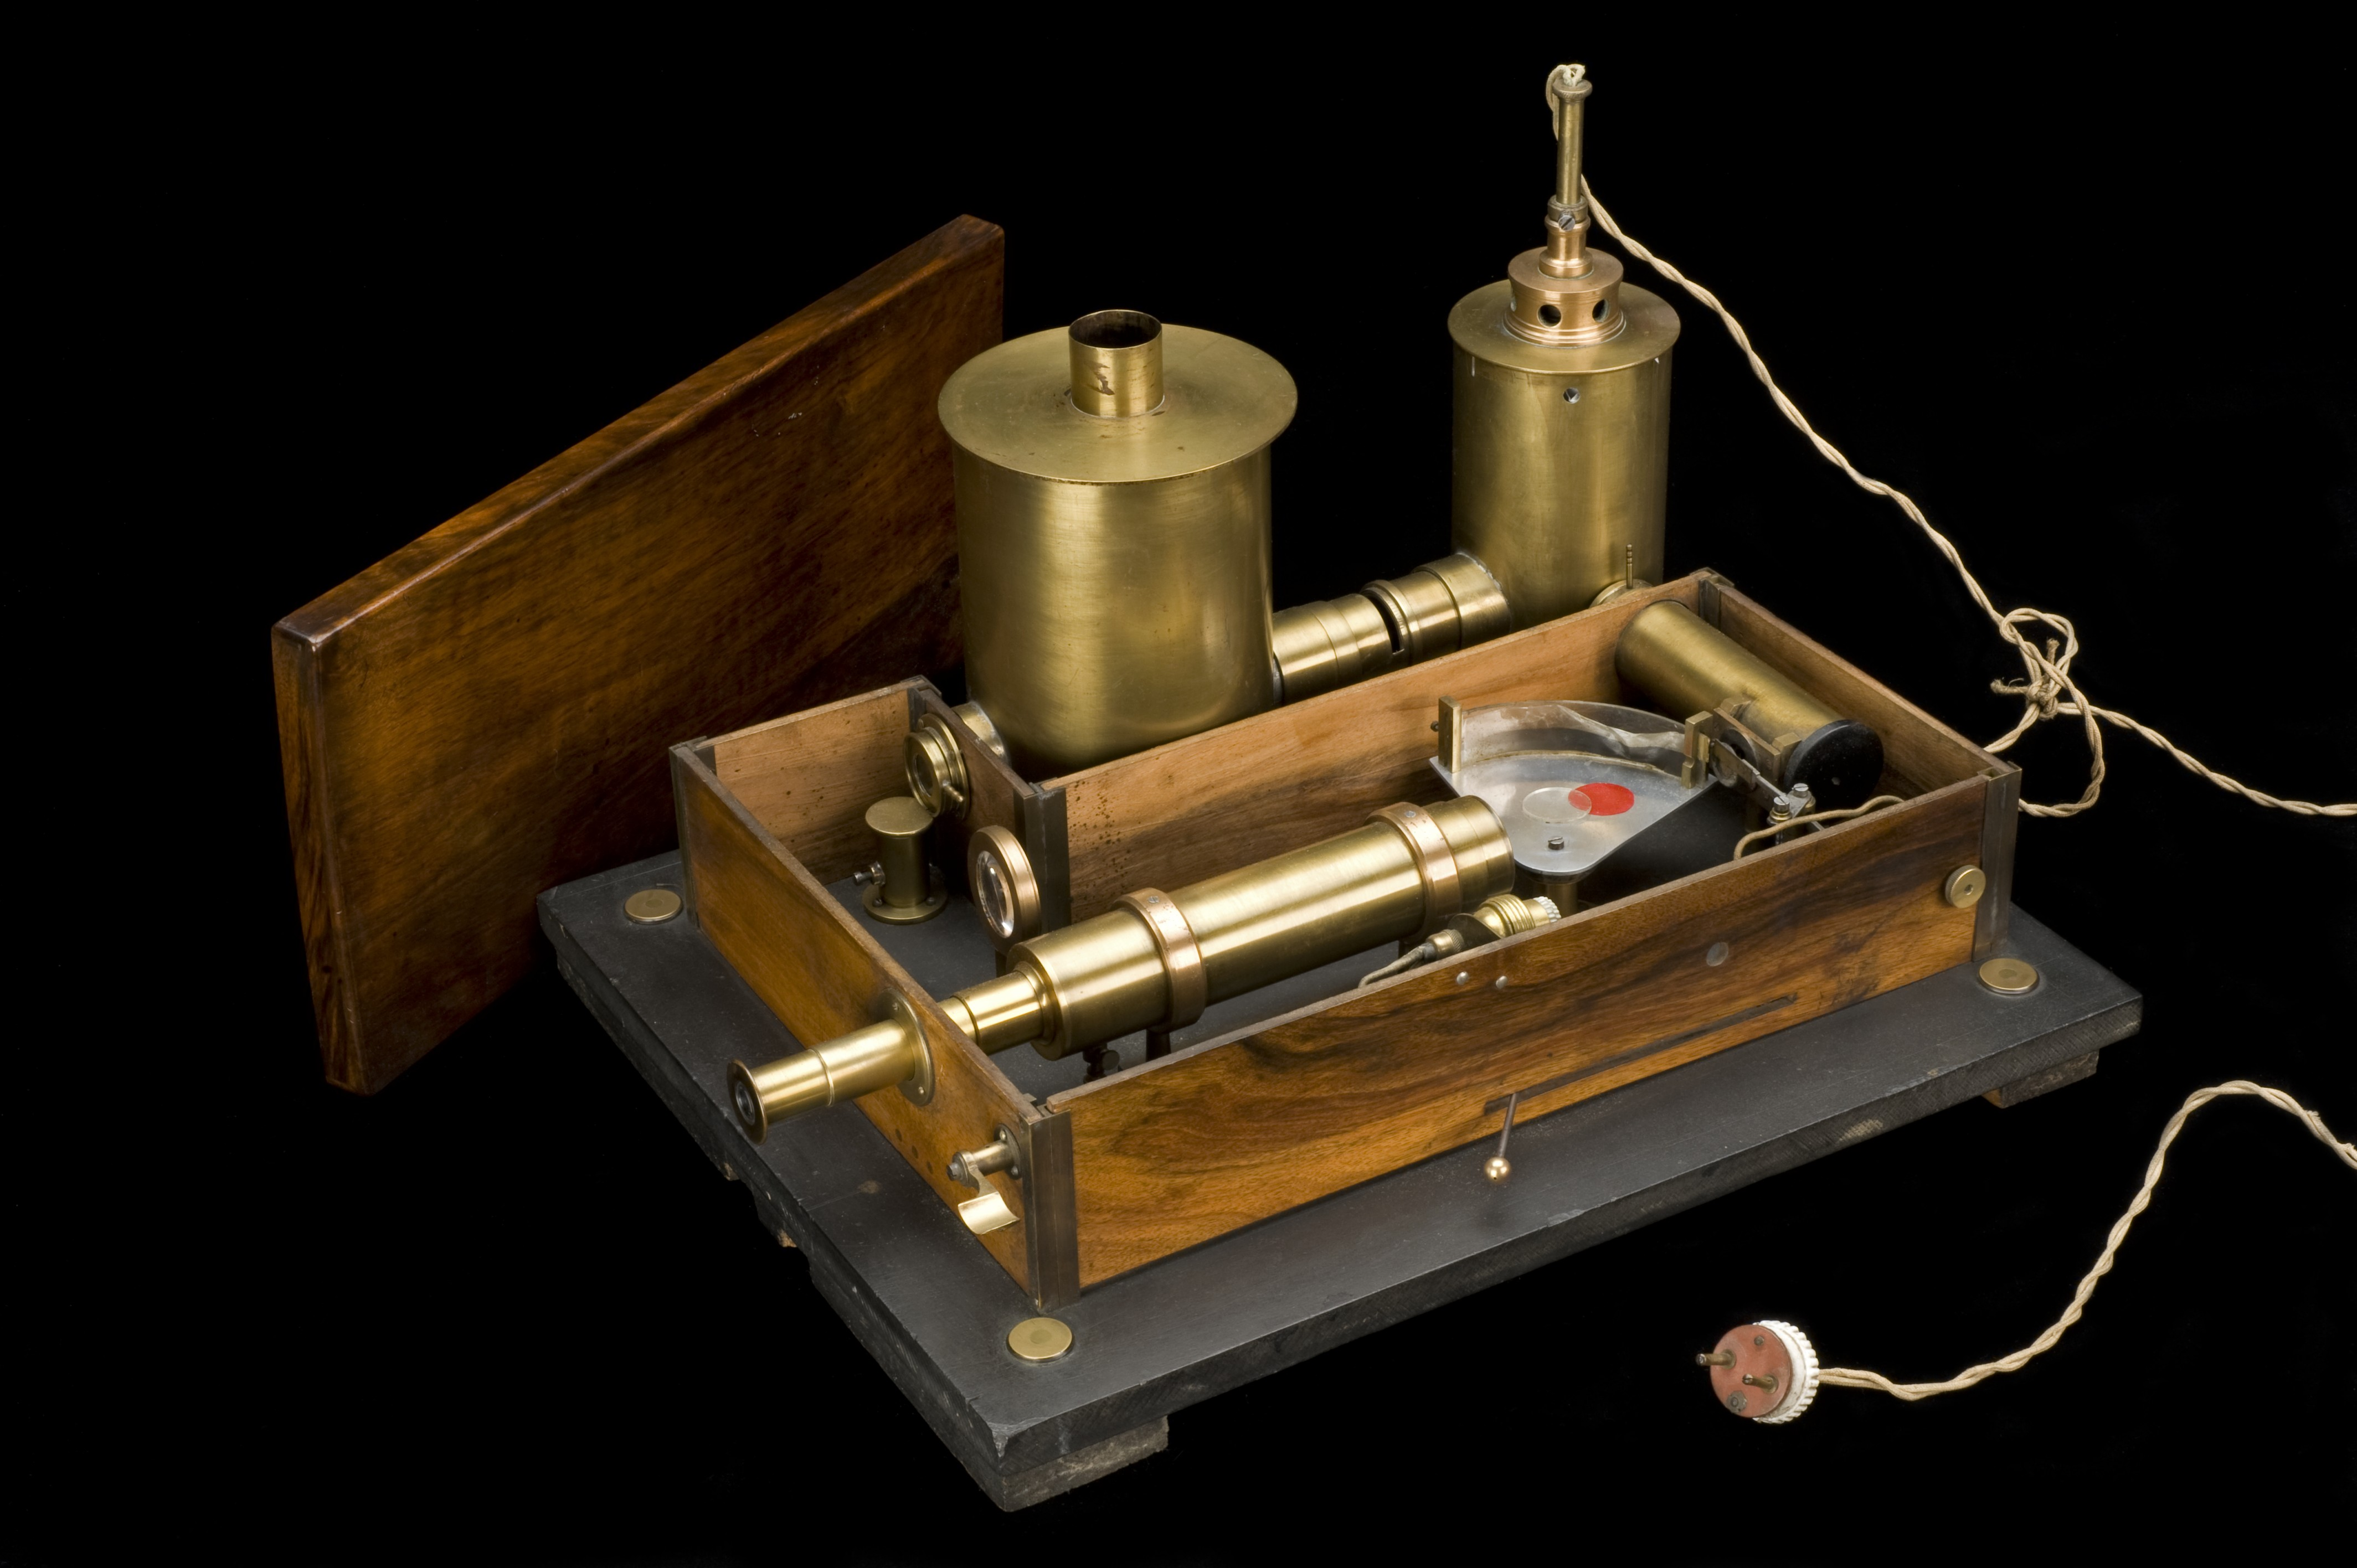 File:Vaccine estimation apparatus, invented by H. Vincent, used i Wellcome L0057875.jpg